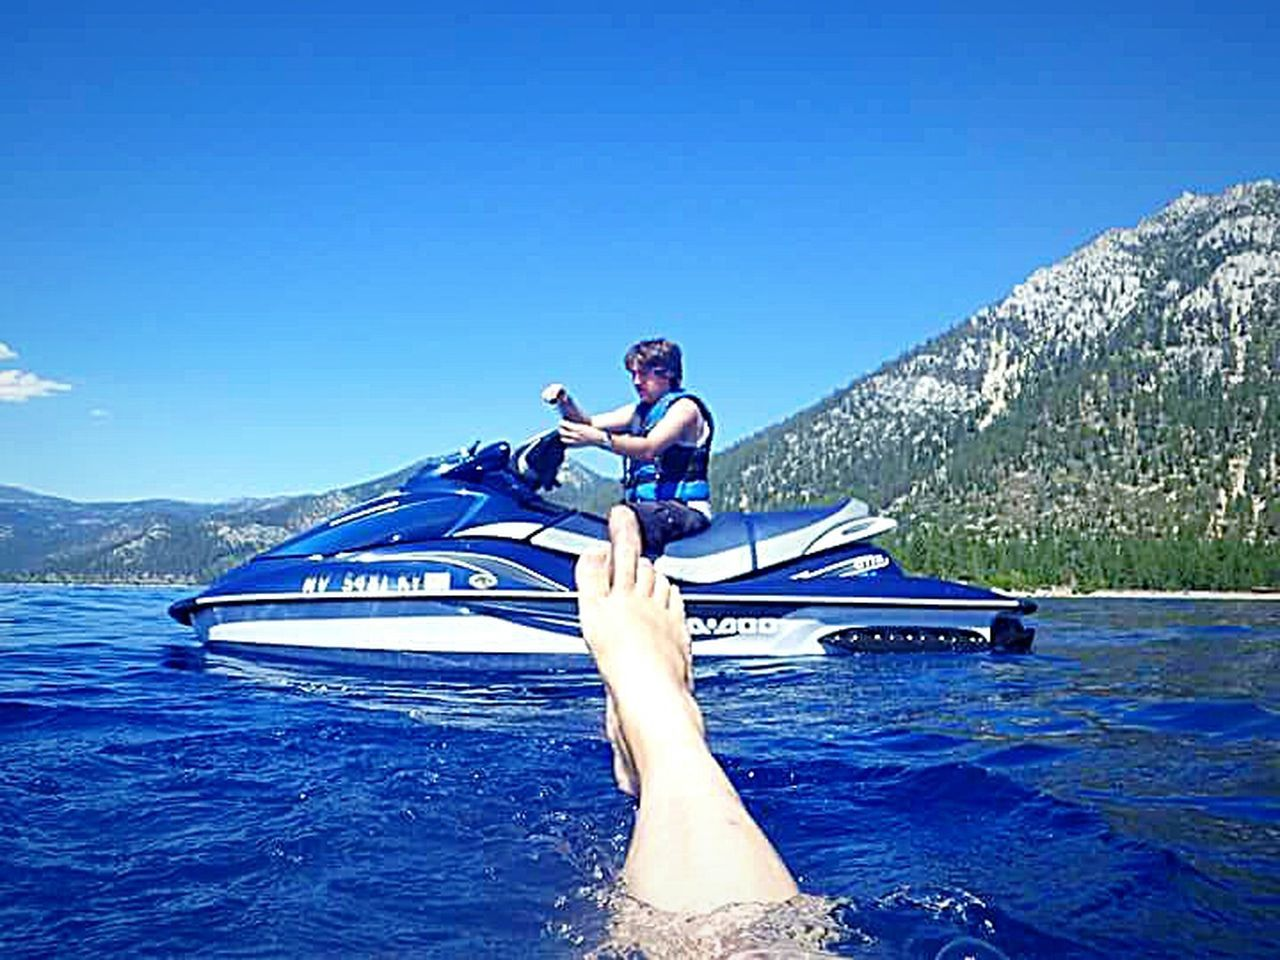 The Essence Of Summer The Following Mother And Son Swimming In The Lake Water Having Fun With Kids Vacation Time ♡ Outdoor Photography Clear Blue Water Taking Photos ❤ Water Photography Waterproof Camera Lake Tahoe My Son ❤ Water Sports My Happy Place  Jet Skiing Sierra Nevada Mountains Mountains And Sky Relaxing Moments Swimming :) Feet Thats Me ♥ Selfie ♥ Hanging Out